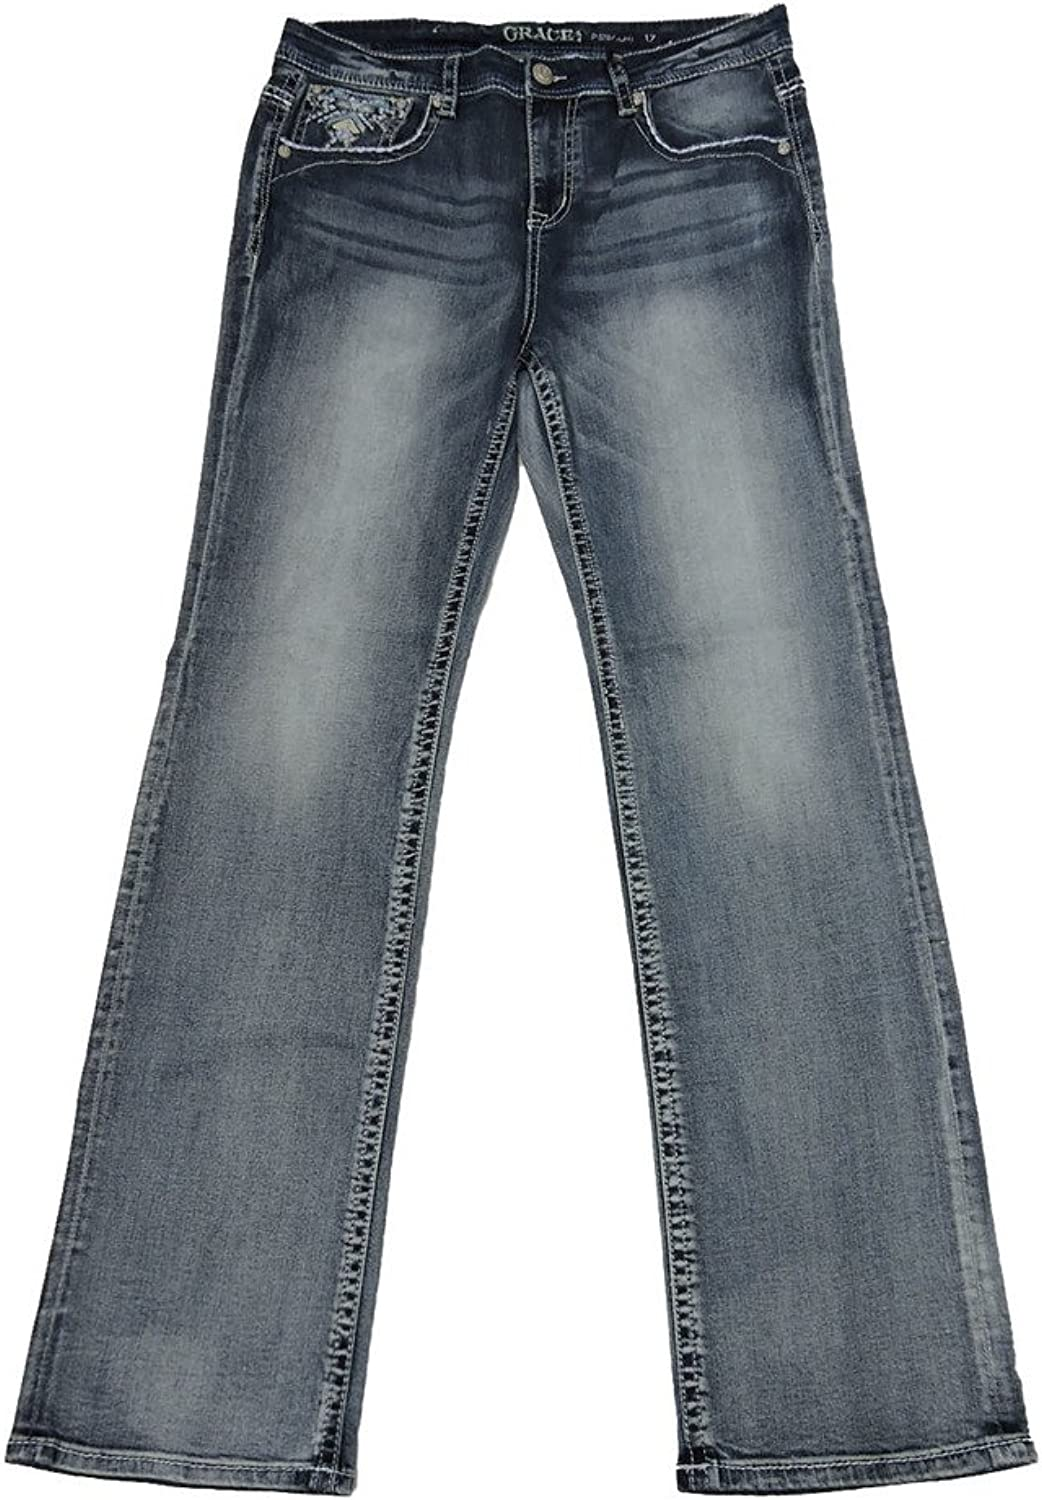 Grace L.A. Idol Women Plus Bootcut Jeans Mid Rise Aztec Diamond Bold Stitch Stretch